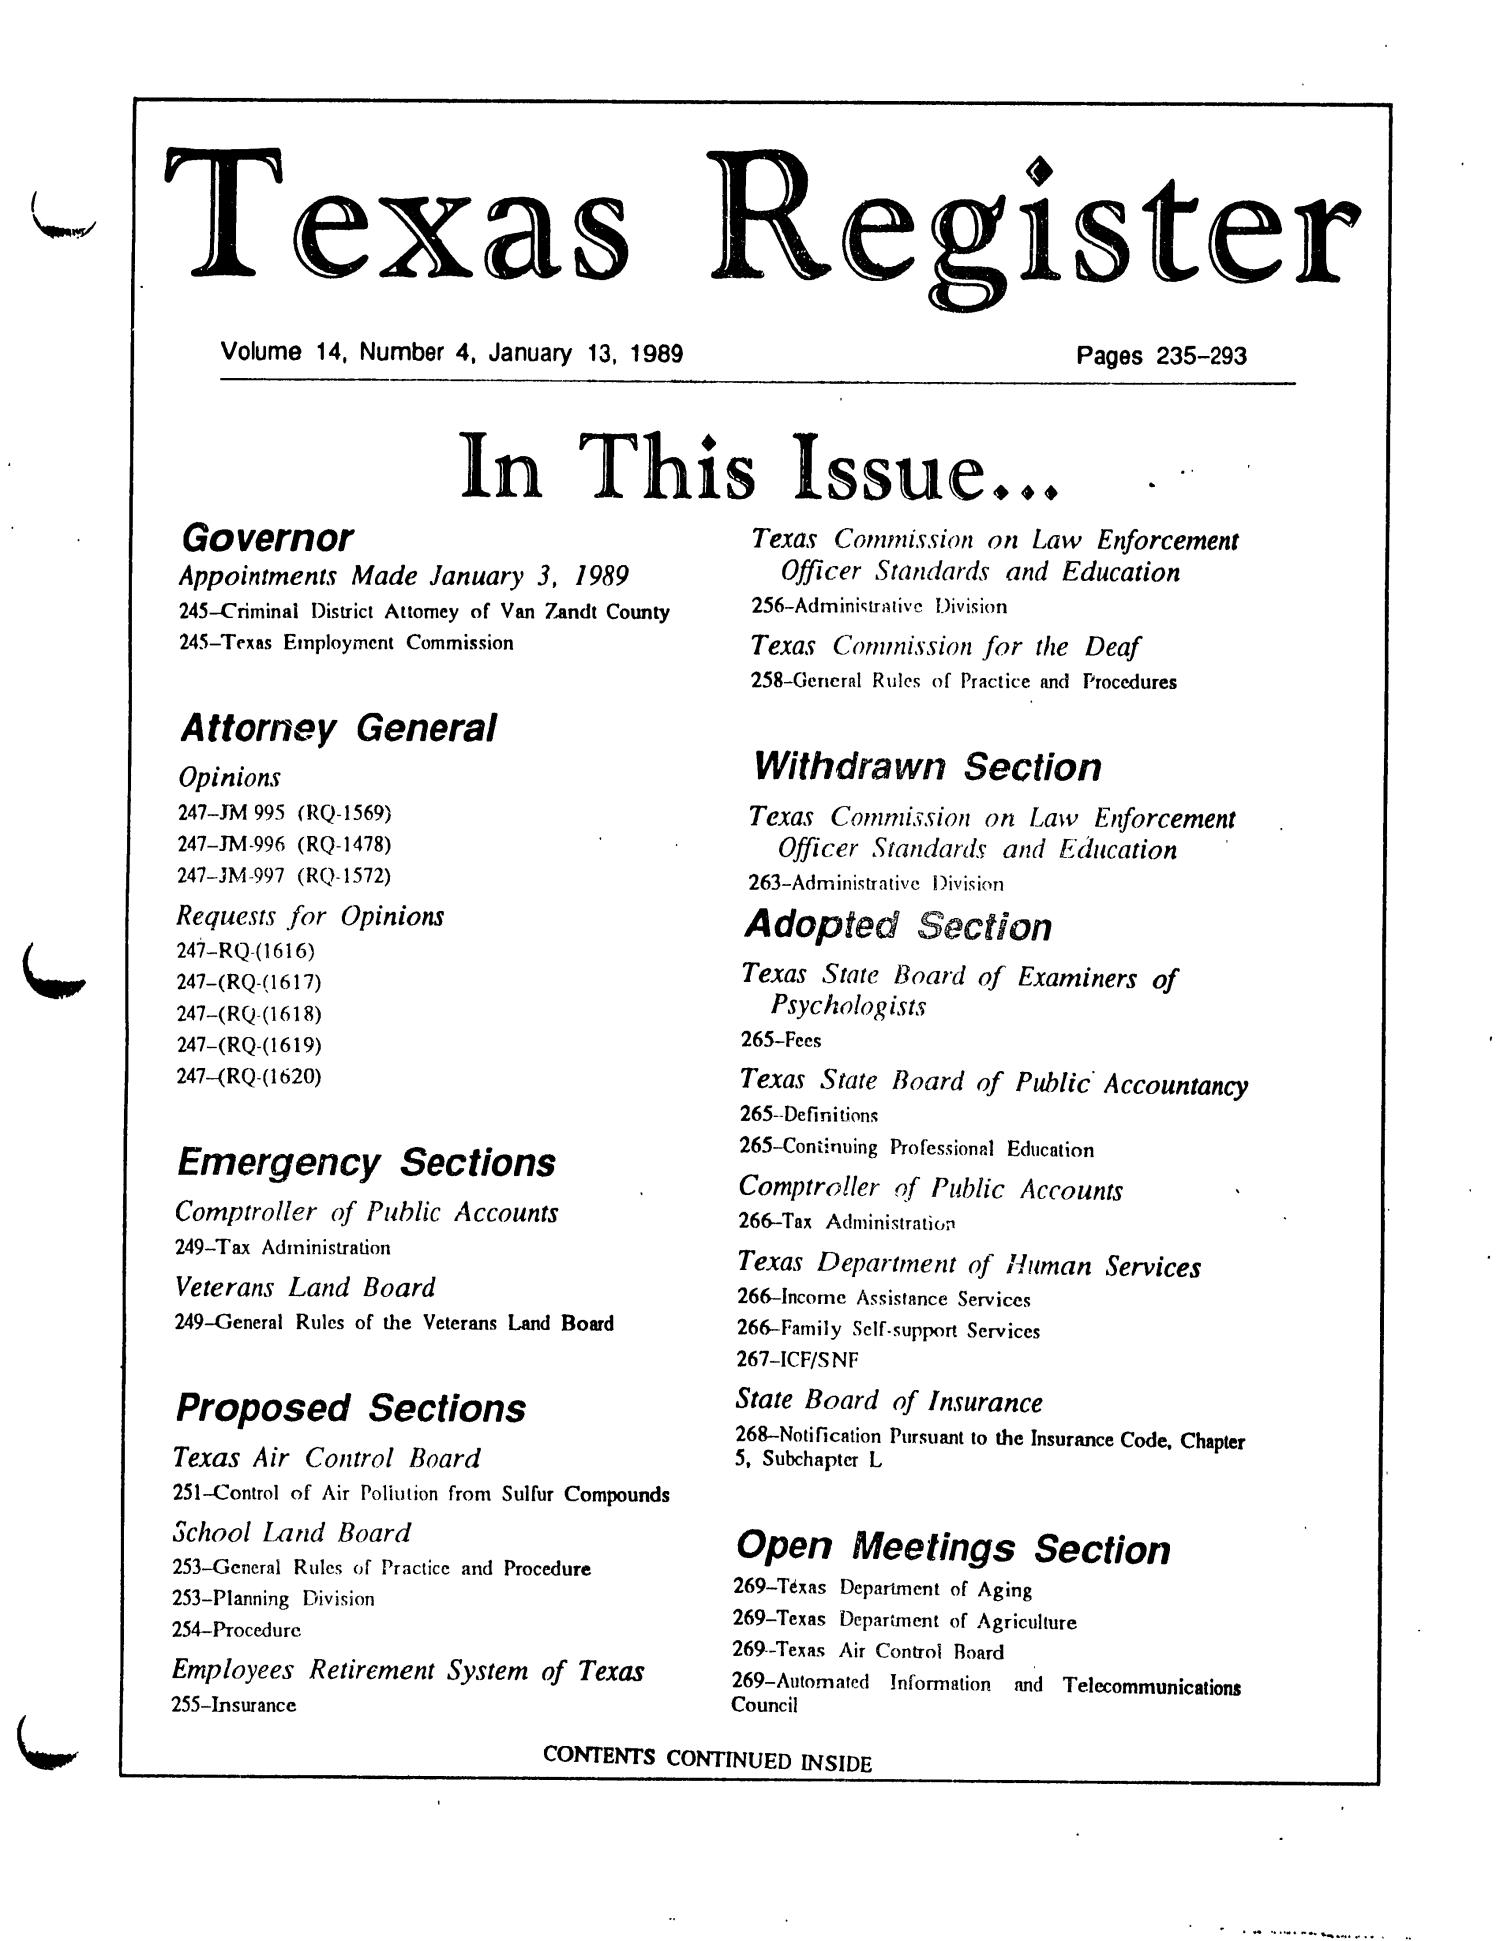 Texas Register, Volume 14, Number 4, Pages 235-293, January 13, 1989                                                                                                      Title Page